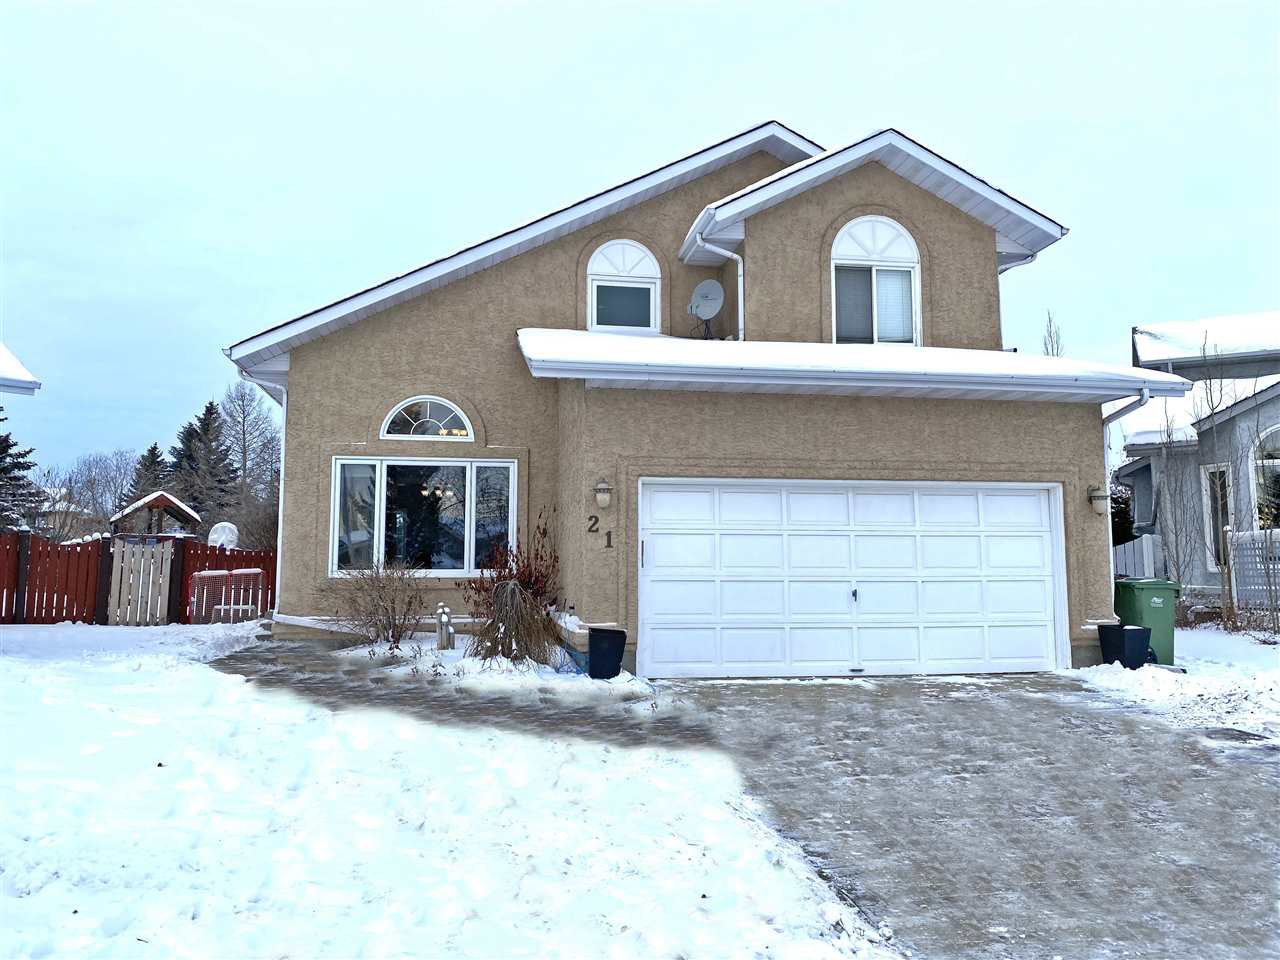 Main Photo: 21 DONAHUE CL: St. Albert House for sale : MLS®# E4184694